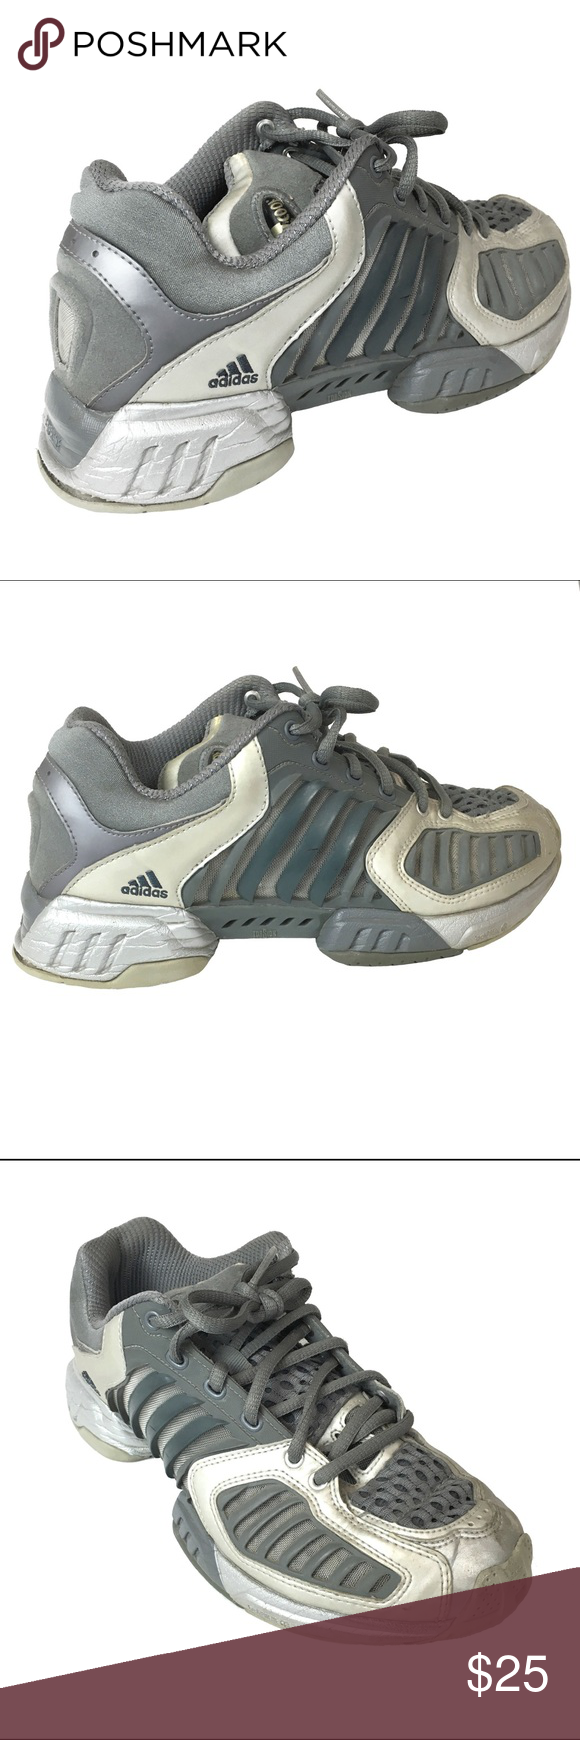 Adidas Climacool Volleyball Sneakers Old Volleyball Shoes Worn Only For Volleyball Flaws Are Pi Shoes Sneakers Adidas Volleyball Sneakers Volleyball Shoes